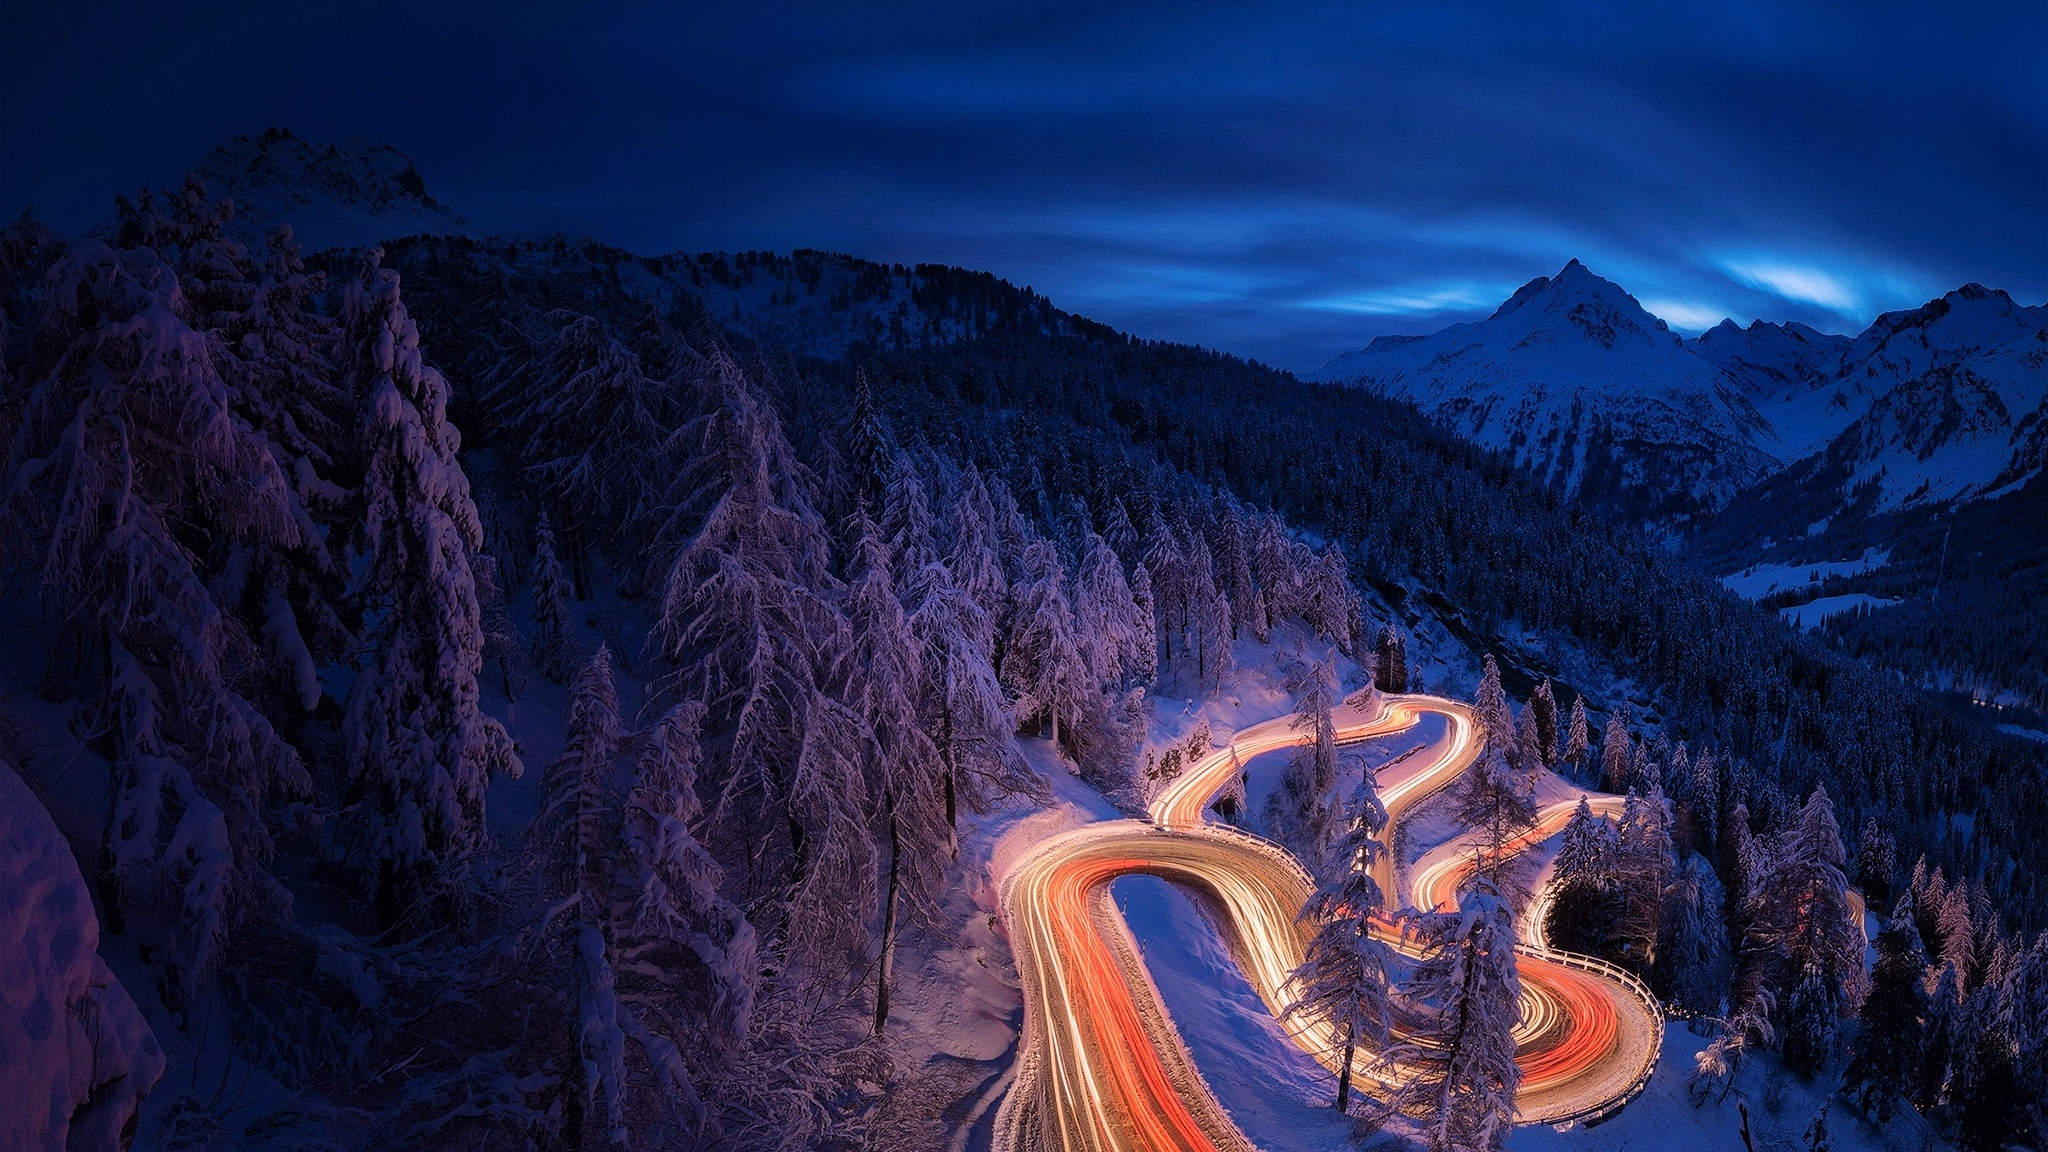 2048x1152 time lapse photography forest landscape mountain night